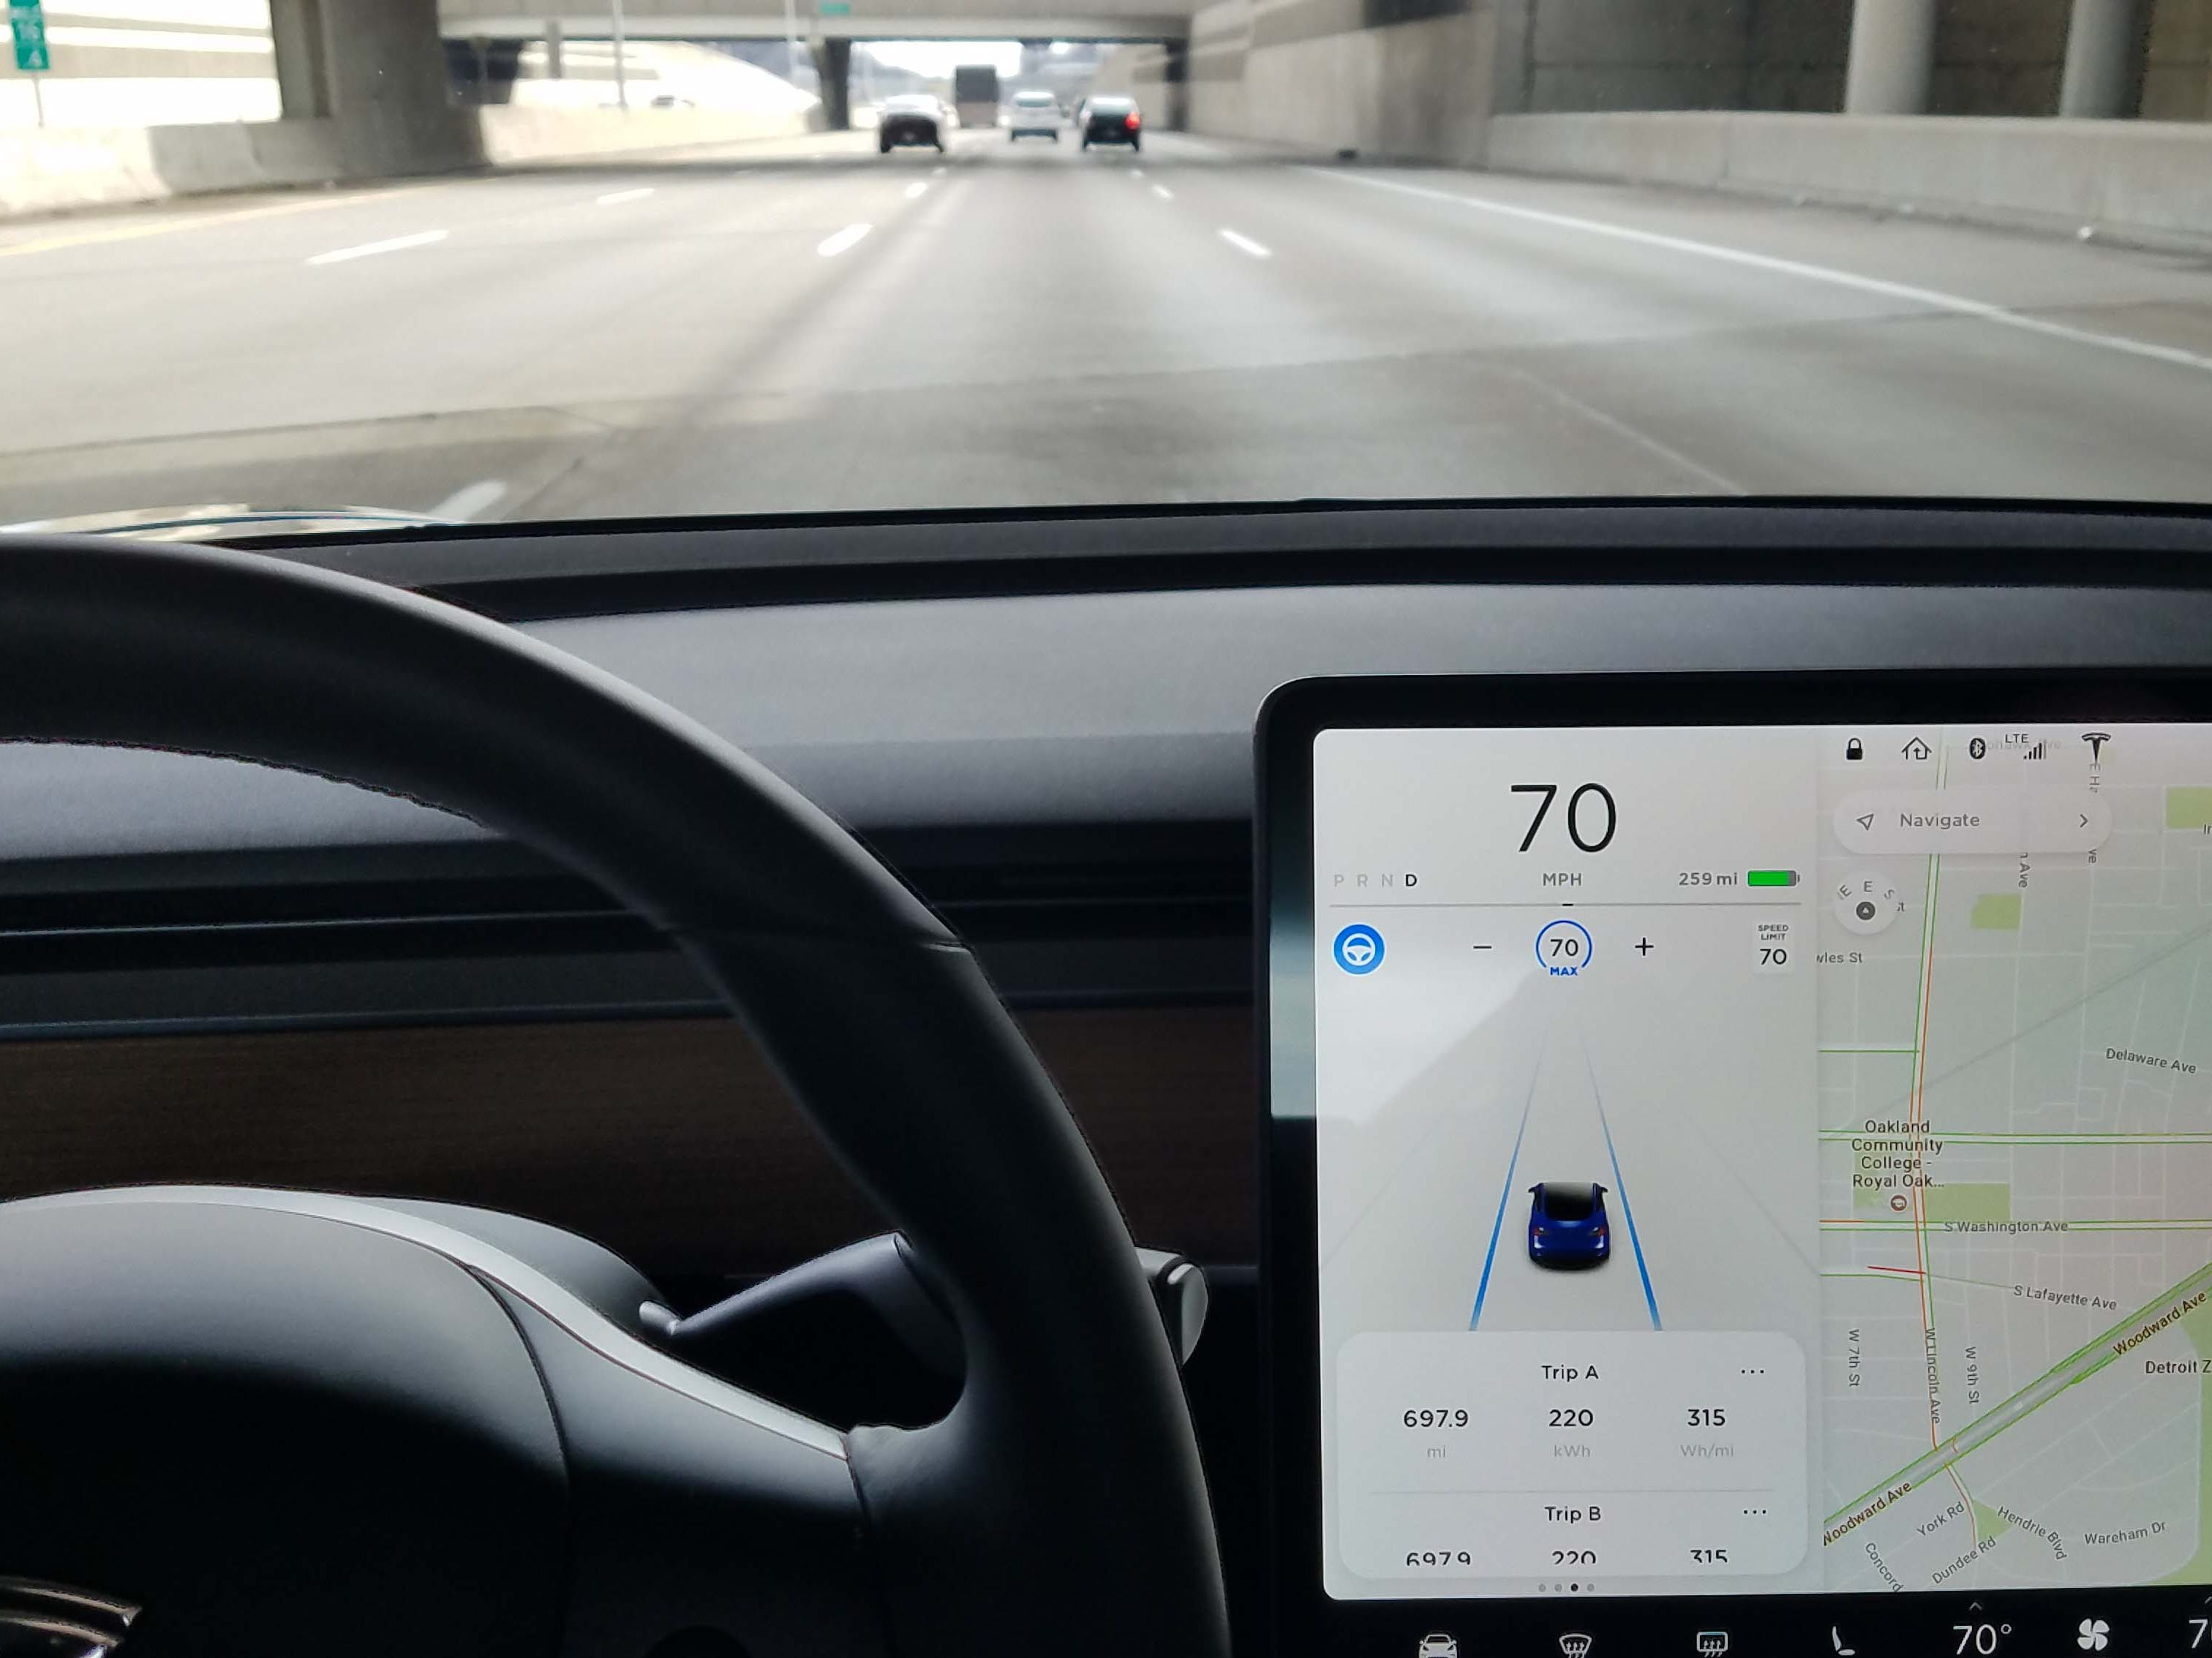 Self-driving Auto Pilot comes as an option of the Tesla Model 3. Push the steering wheel button on the northwest corner of the display, it turns blue, and the car takes over.